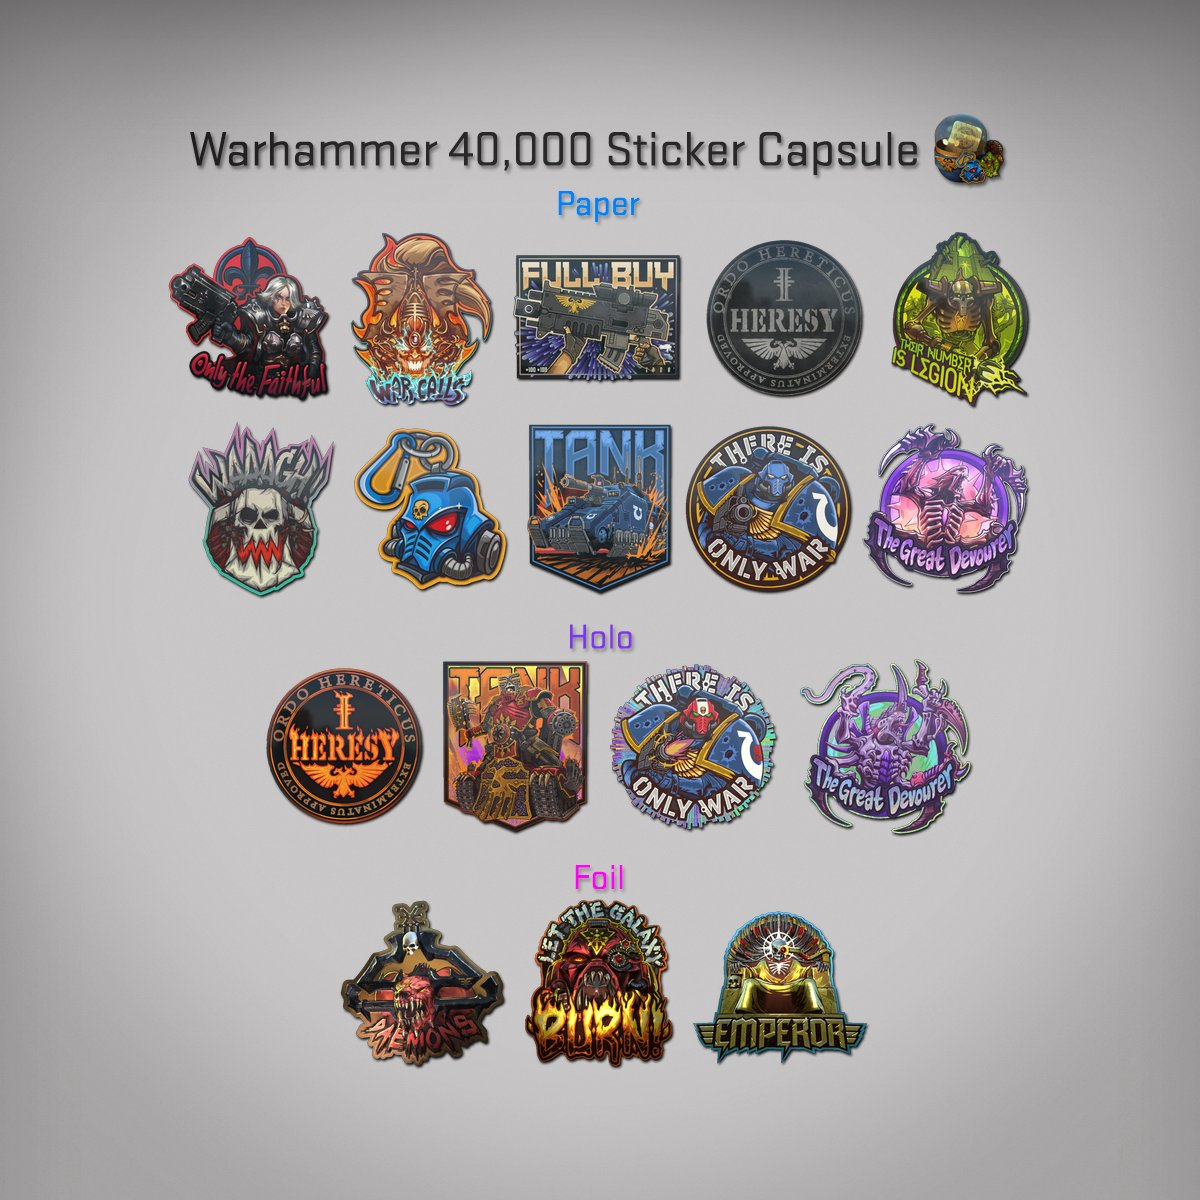 Today were shipping the Warhammer (@WarComTeam) 40,000 Sticker Capsule, featuring 17 unique designs from the 40K universe! Weve also added a setting to change your main menu background and a new killed by C4 killfeed icon. More in todays Blog Post: blog.counter-strike.net/index.php/2020…